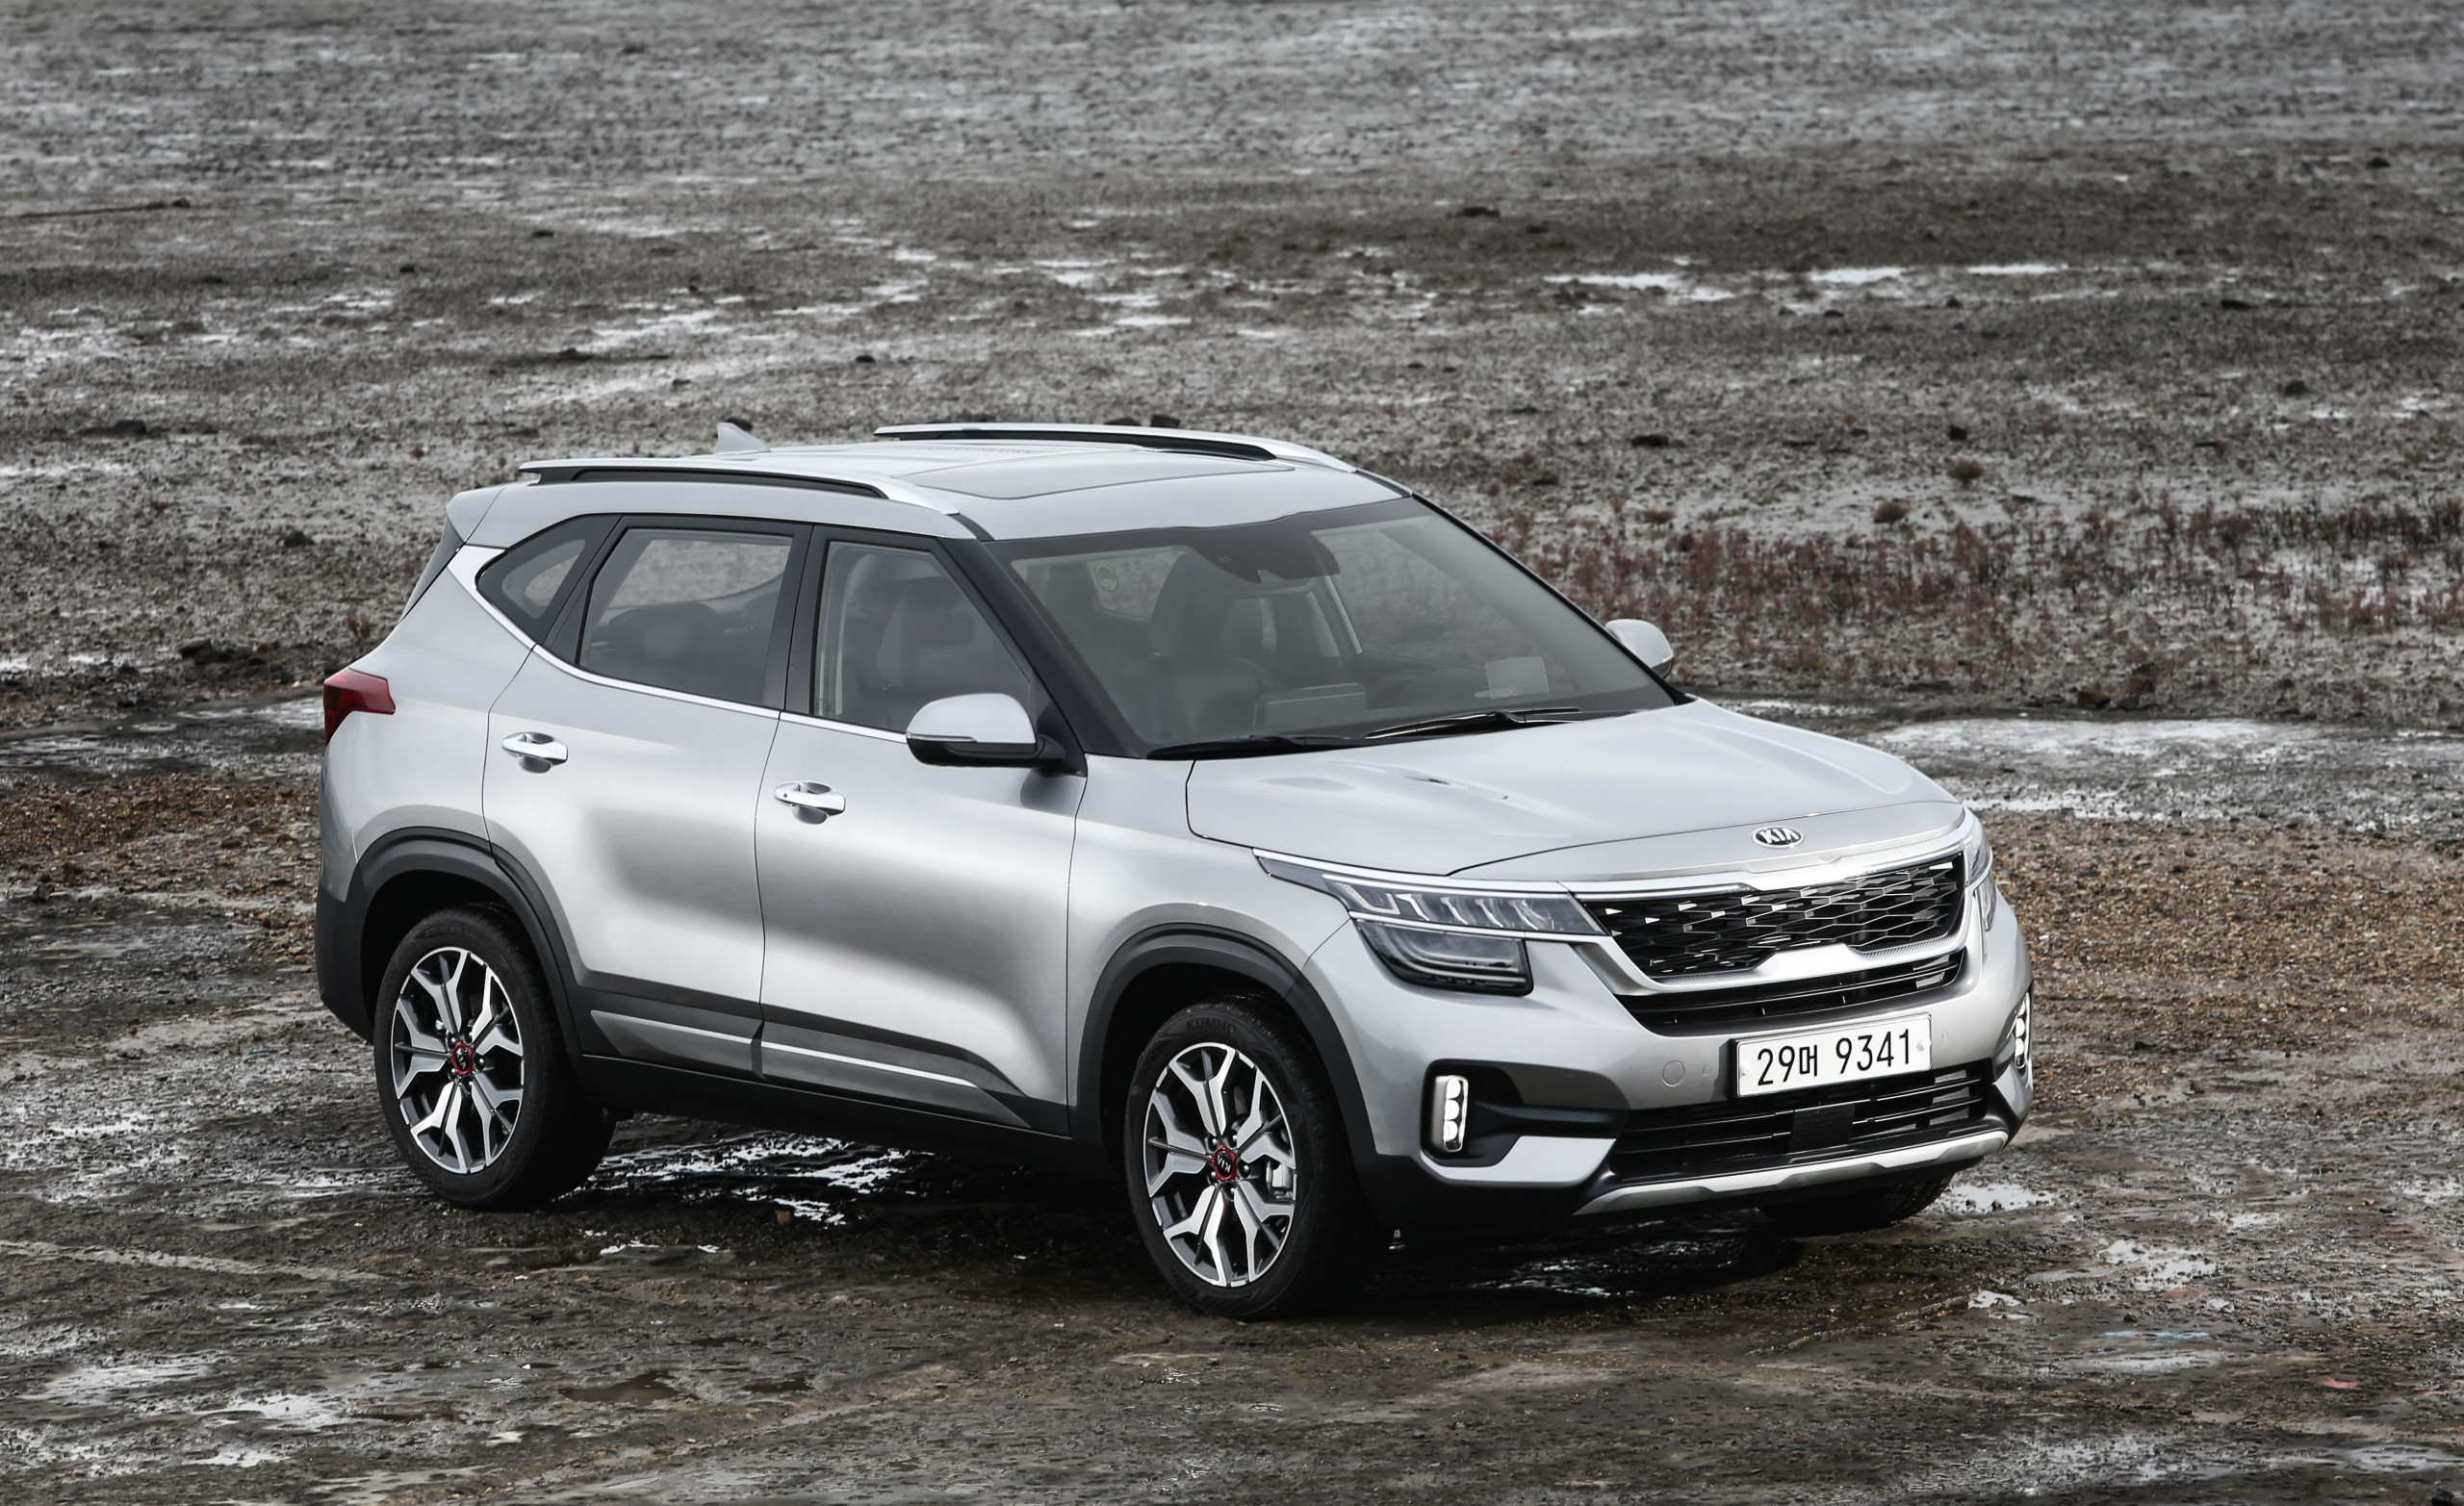 2021 Kia Sportage Review Price, Design and Review